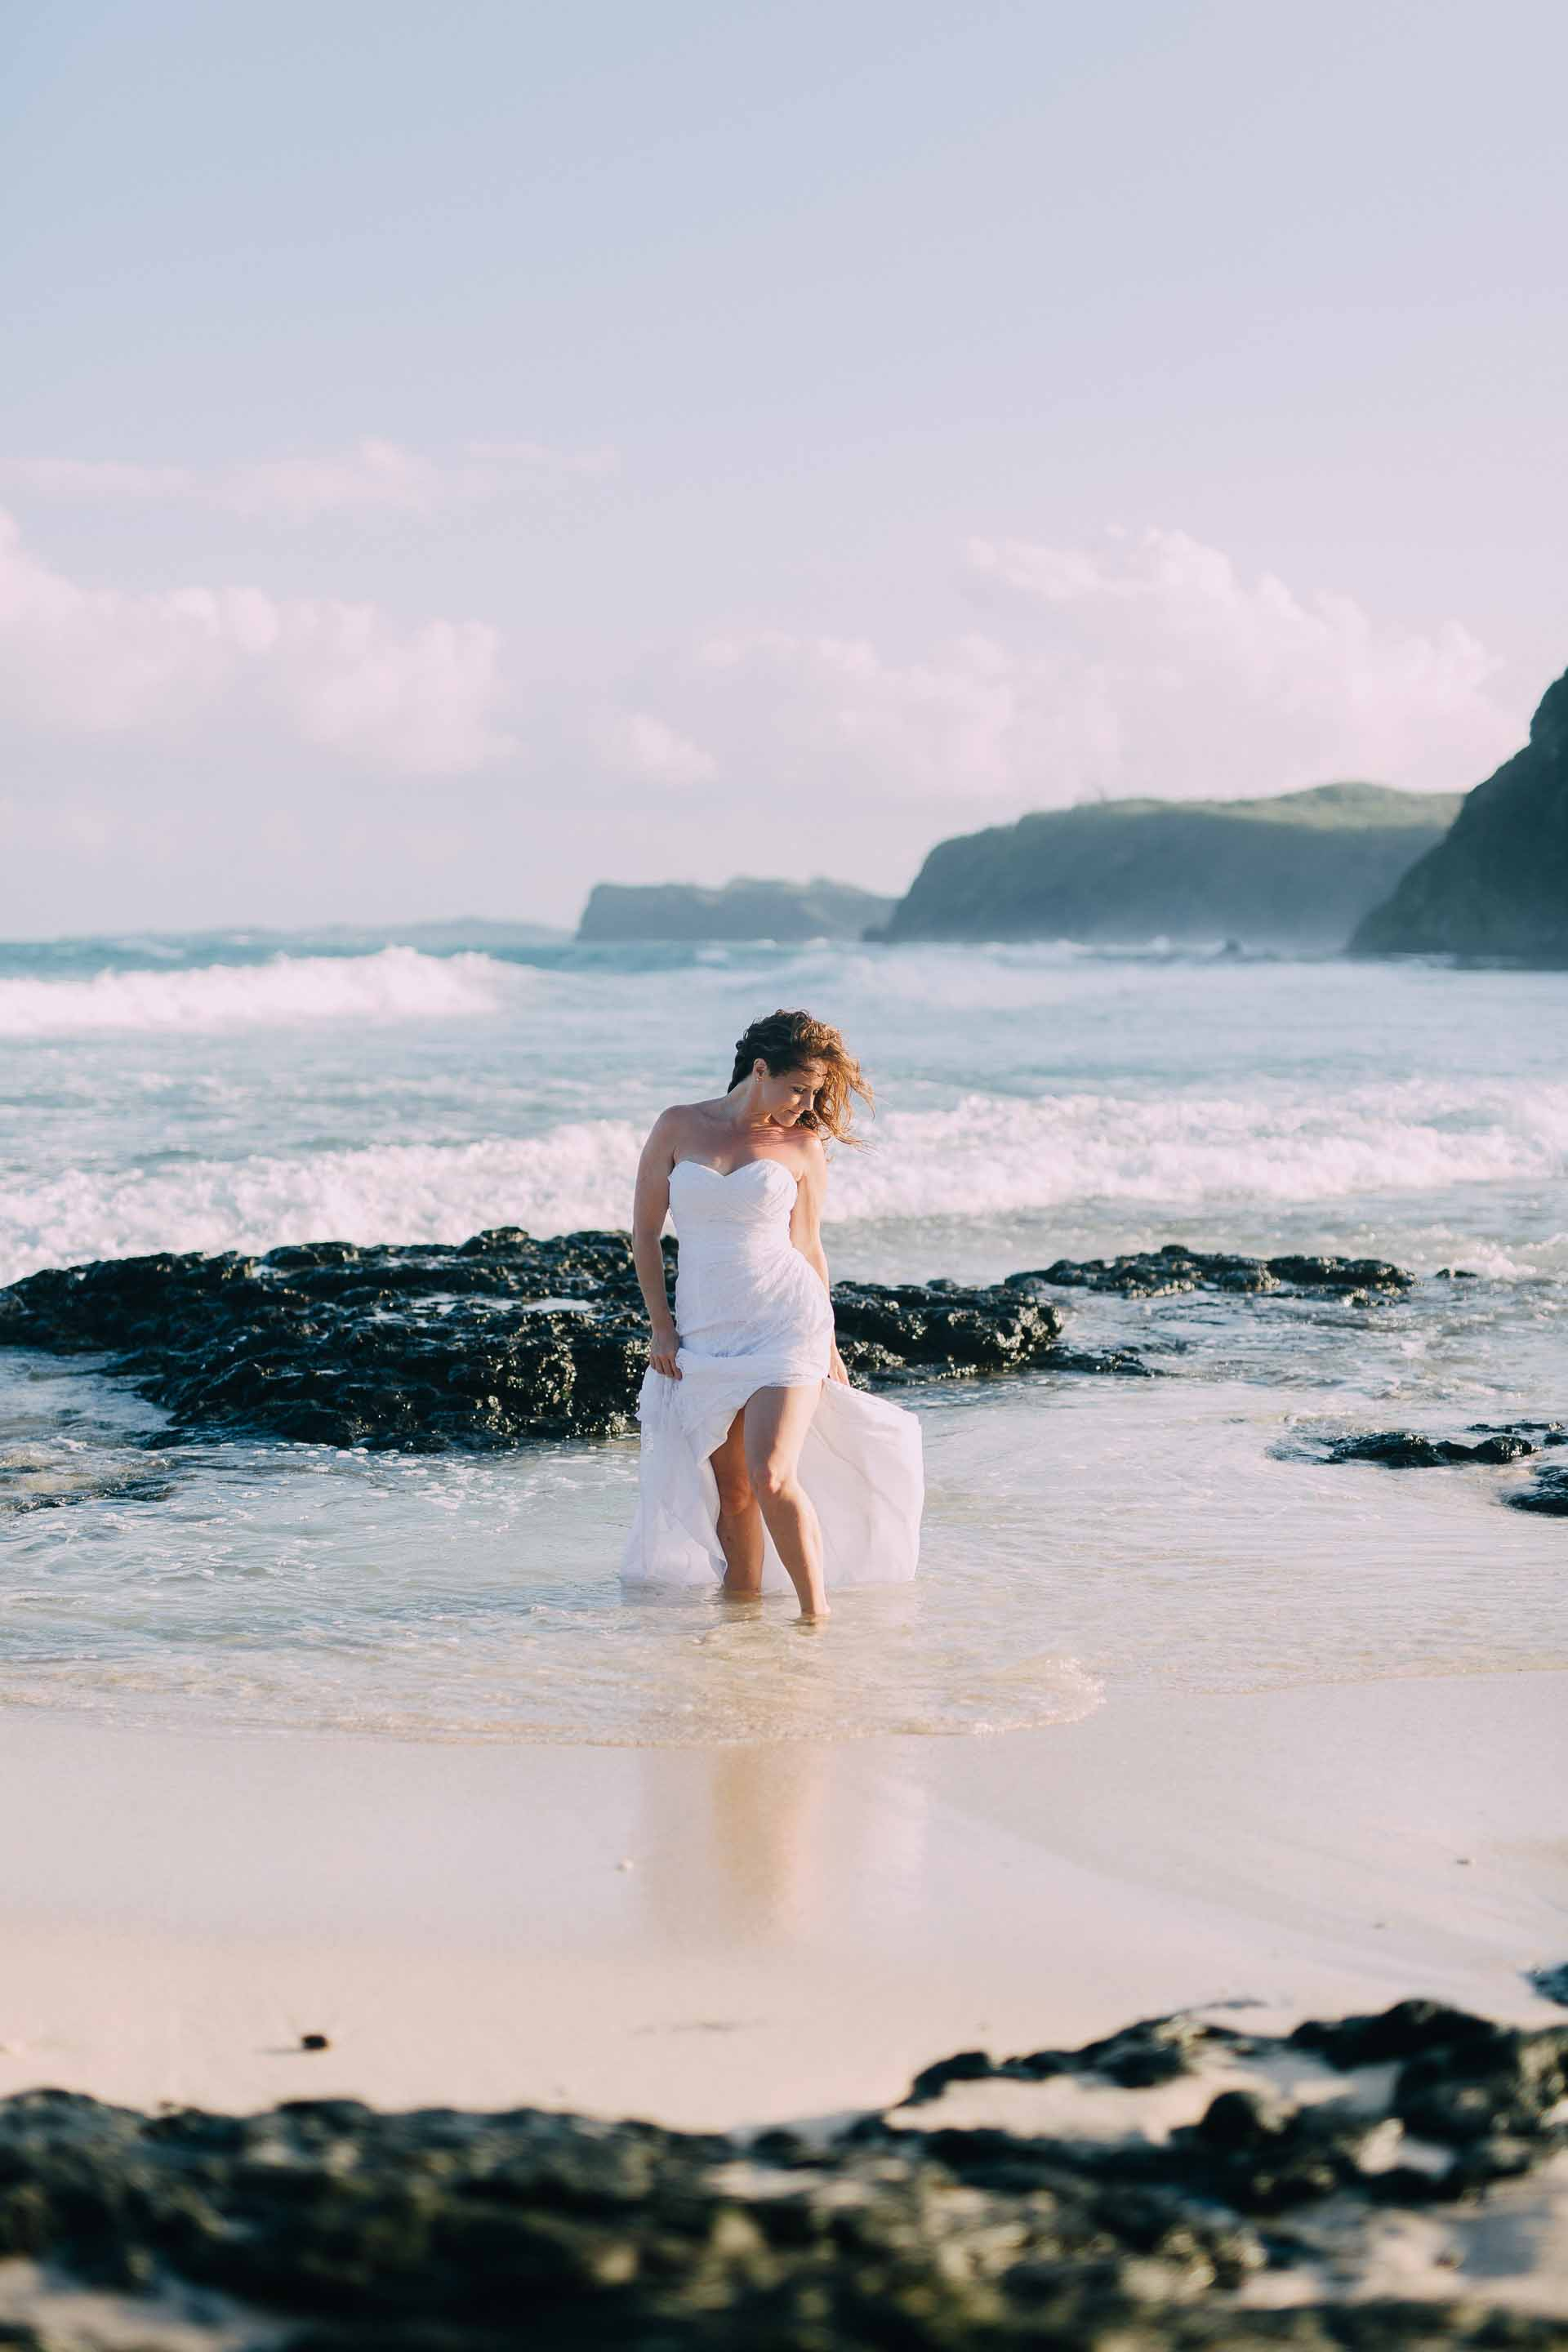 The bride in her wedding dress in the water